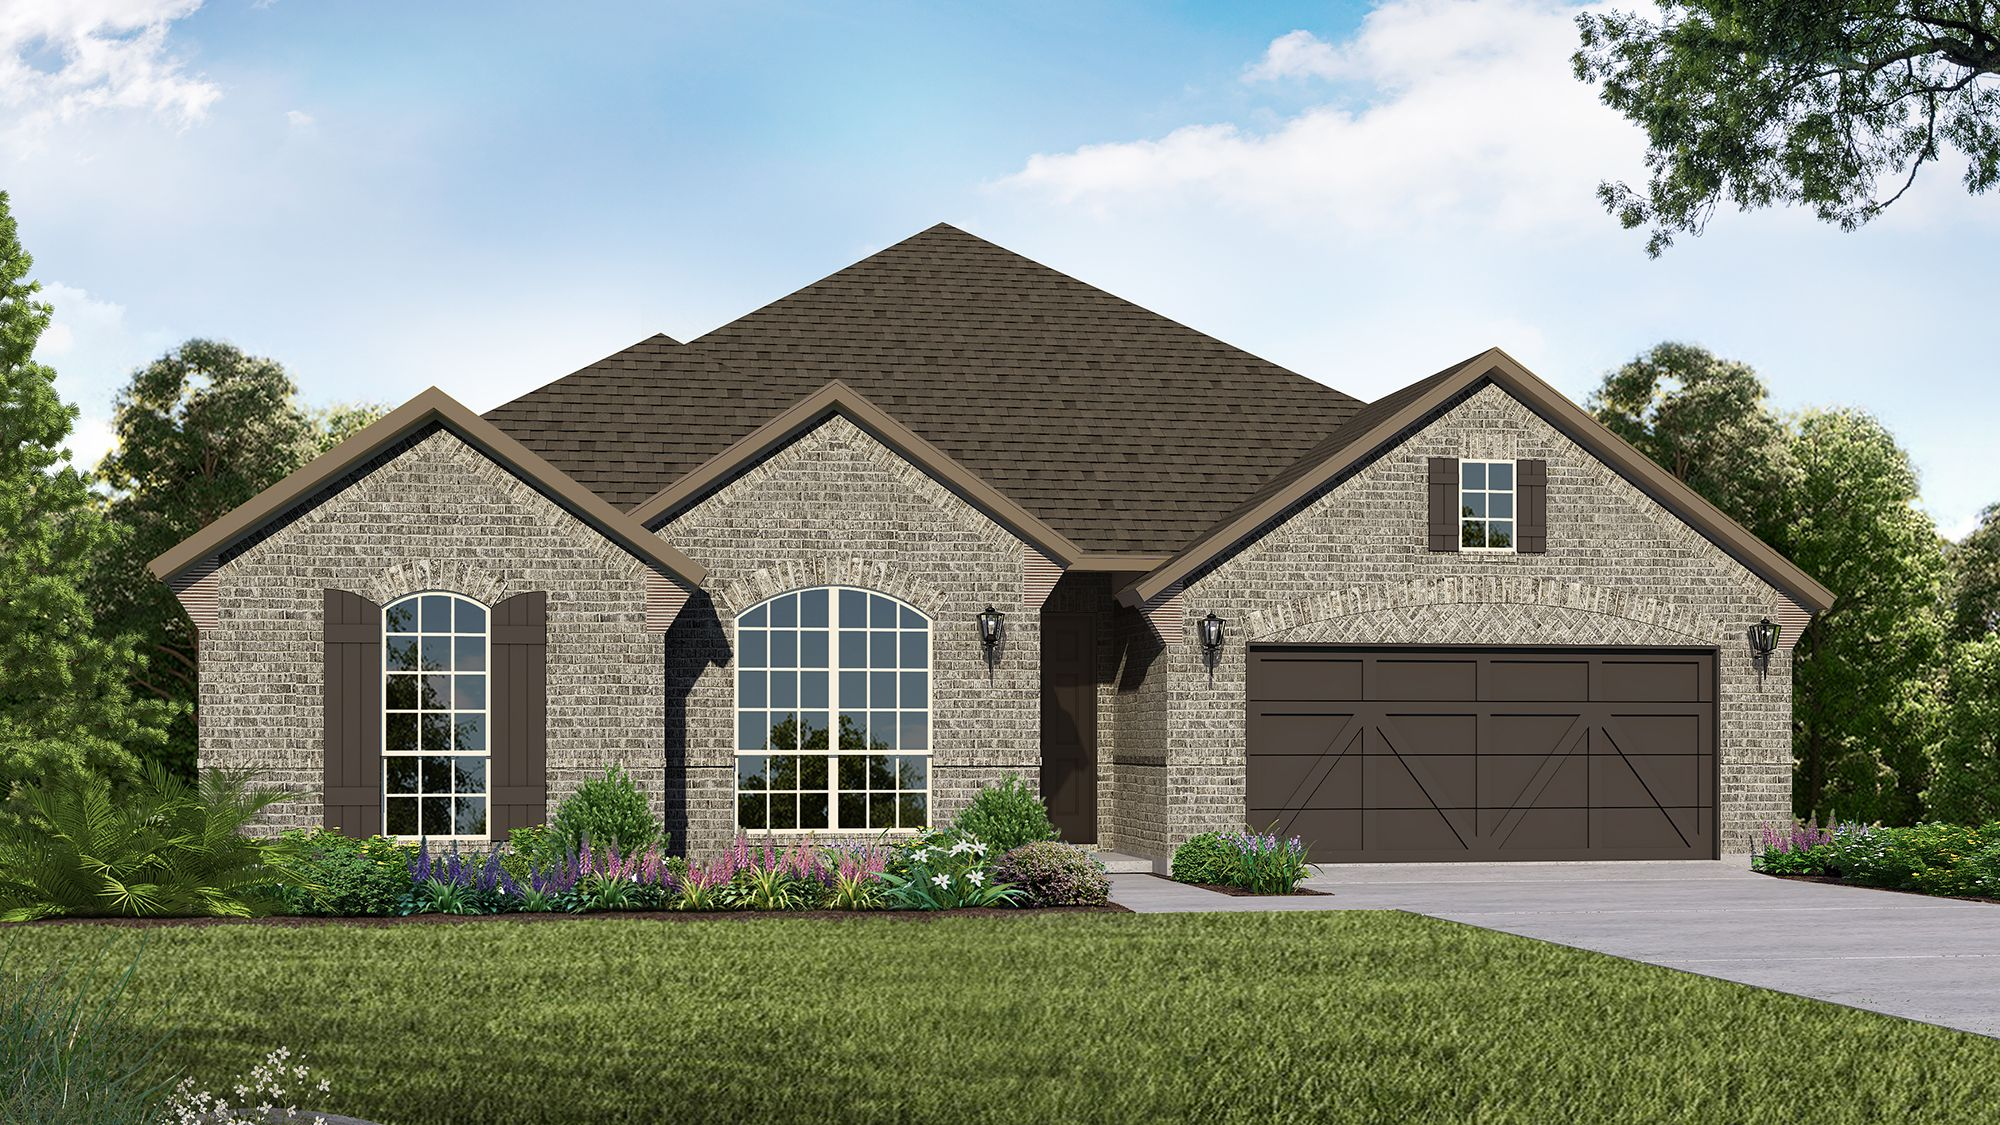 Plan 1685 Elevation A by American Legend Homes